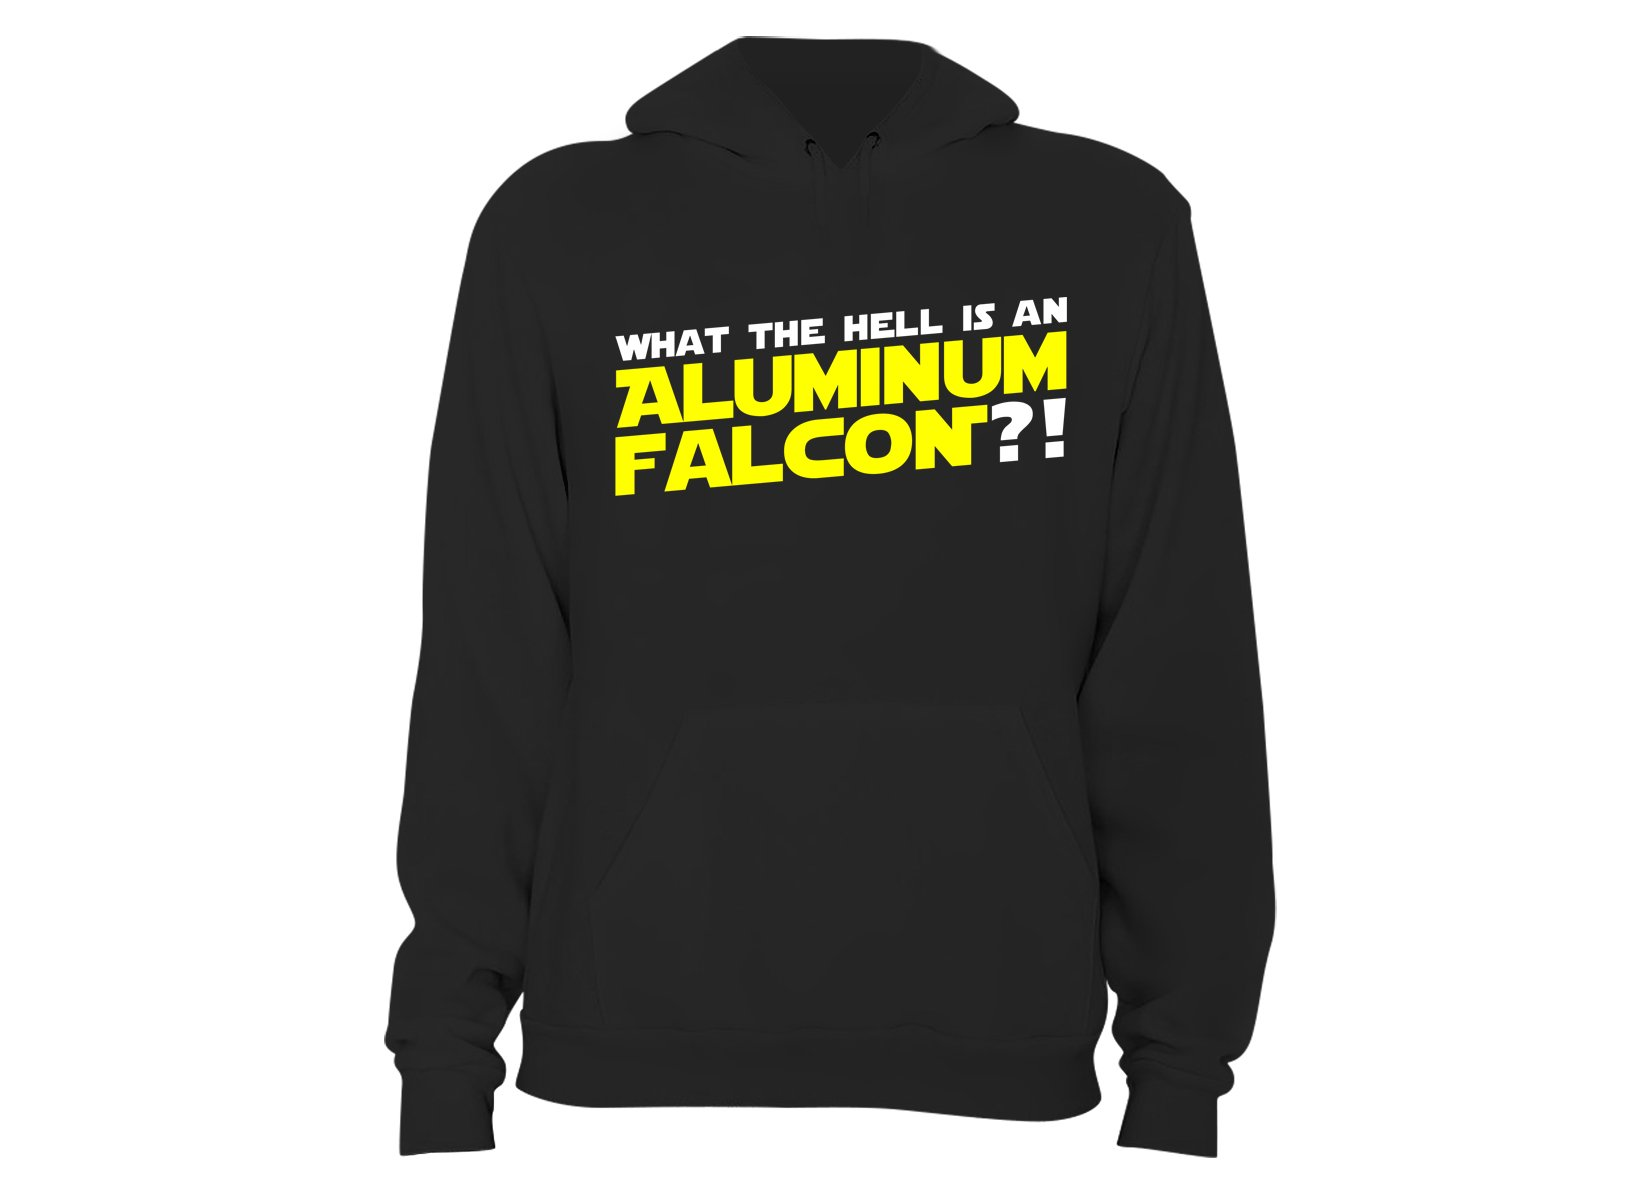 Aluminum Falcon on Hoodie